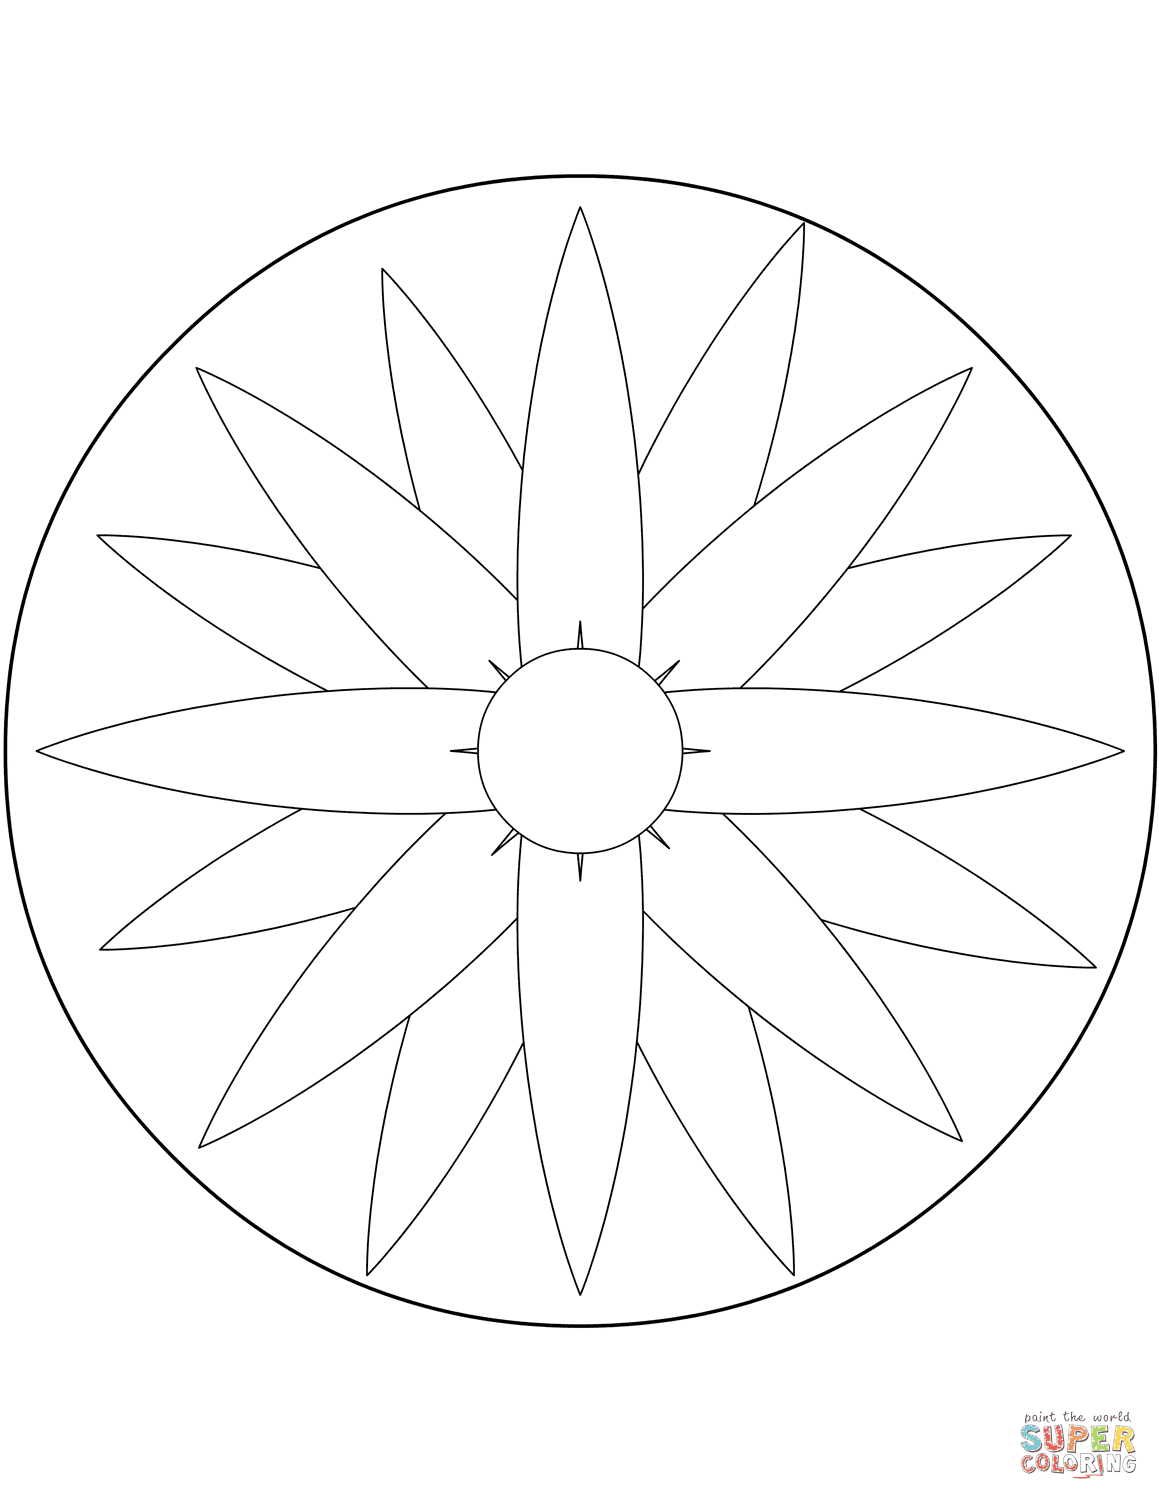 Top Easy Flower Mandala Designs Coloring Pages Drawing